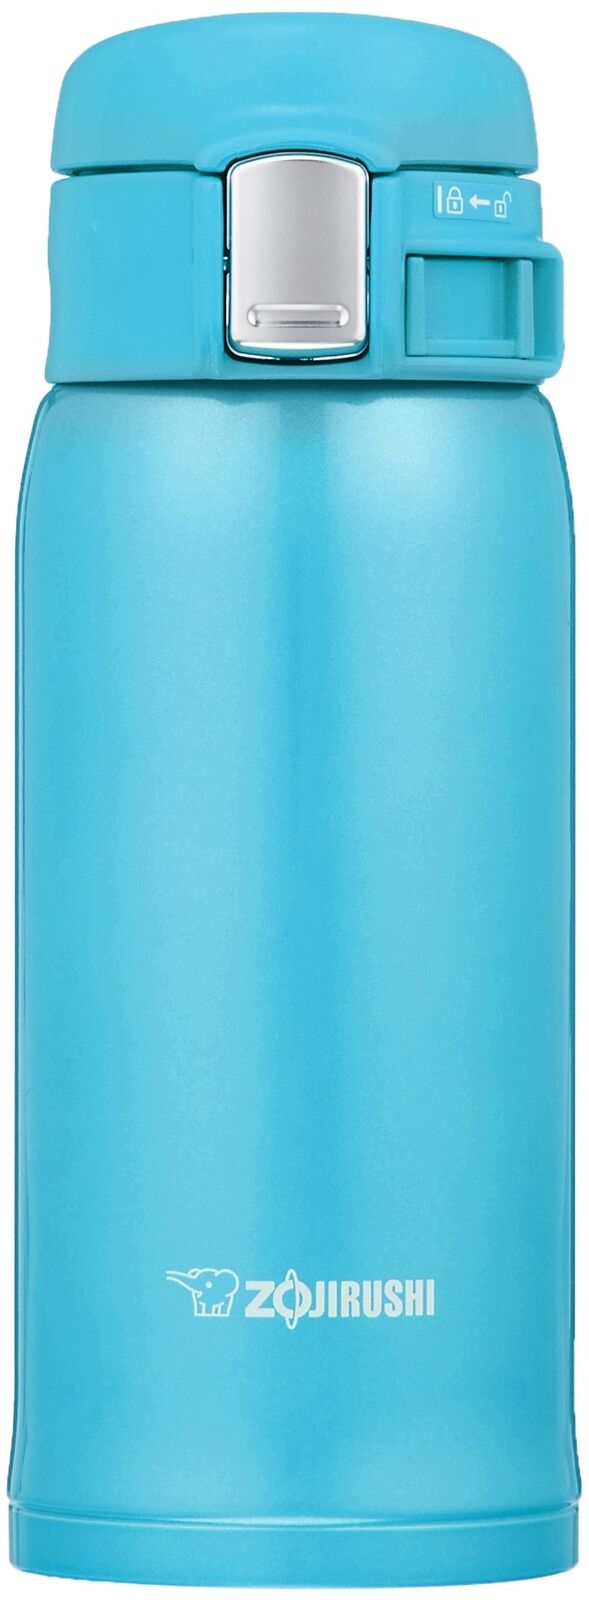 Zojirushi SM-SC36-AV Stainless Thermos Mug Bottle 0.36L (Turquoise bluee)